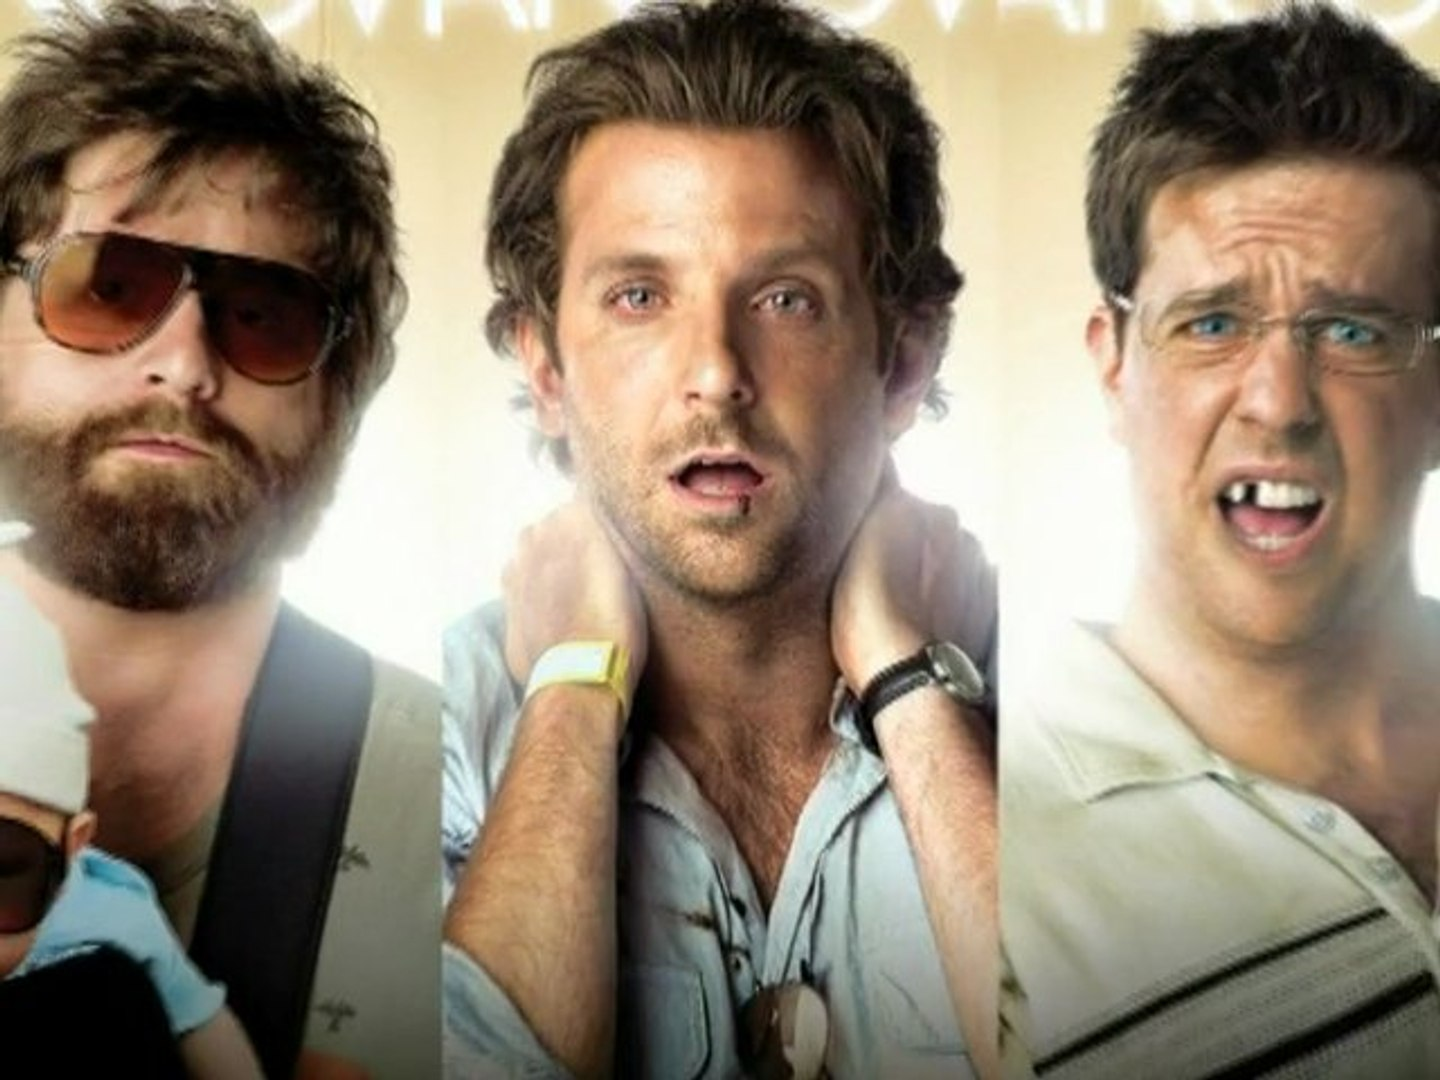 Hangover 3 To Be The Final Installment – Hollywood News